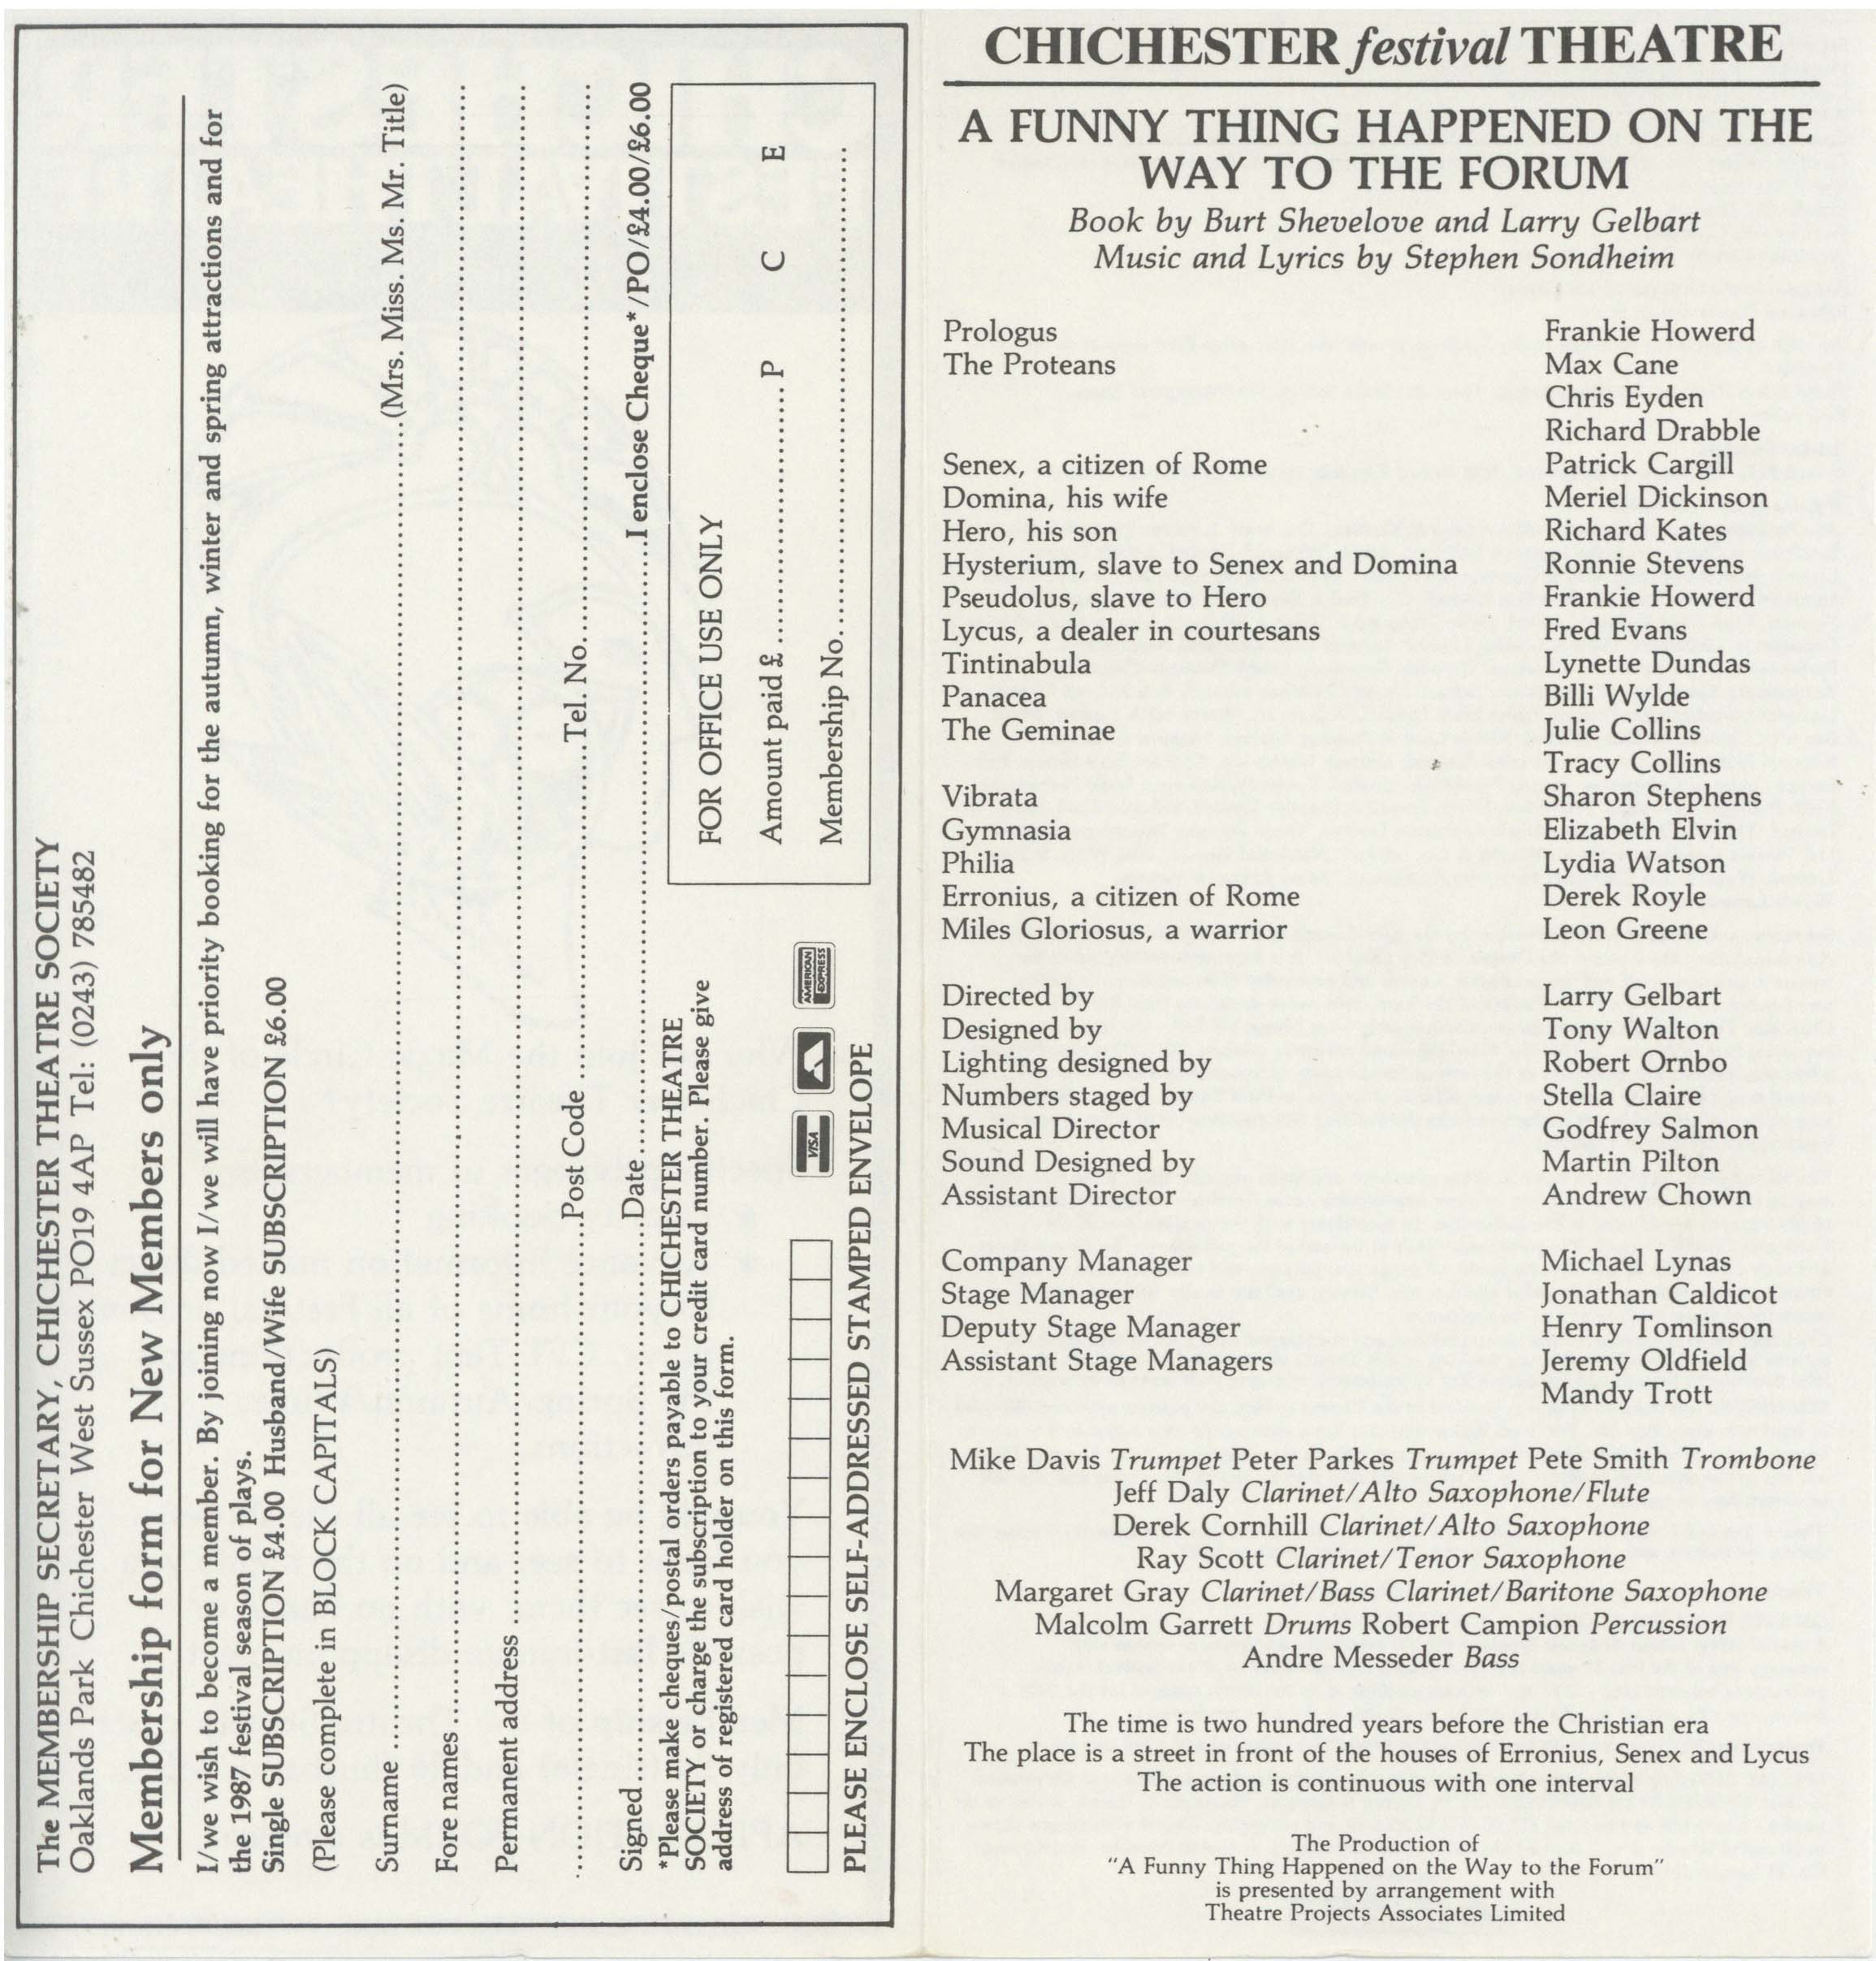 Cast List - A Funny Thing Happened On The Way To The Forum - 1986 - 2 of 2